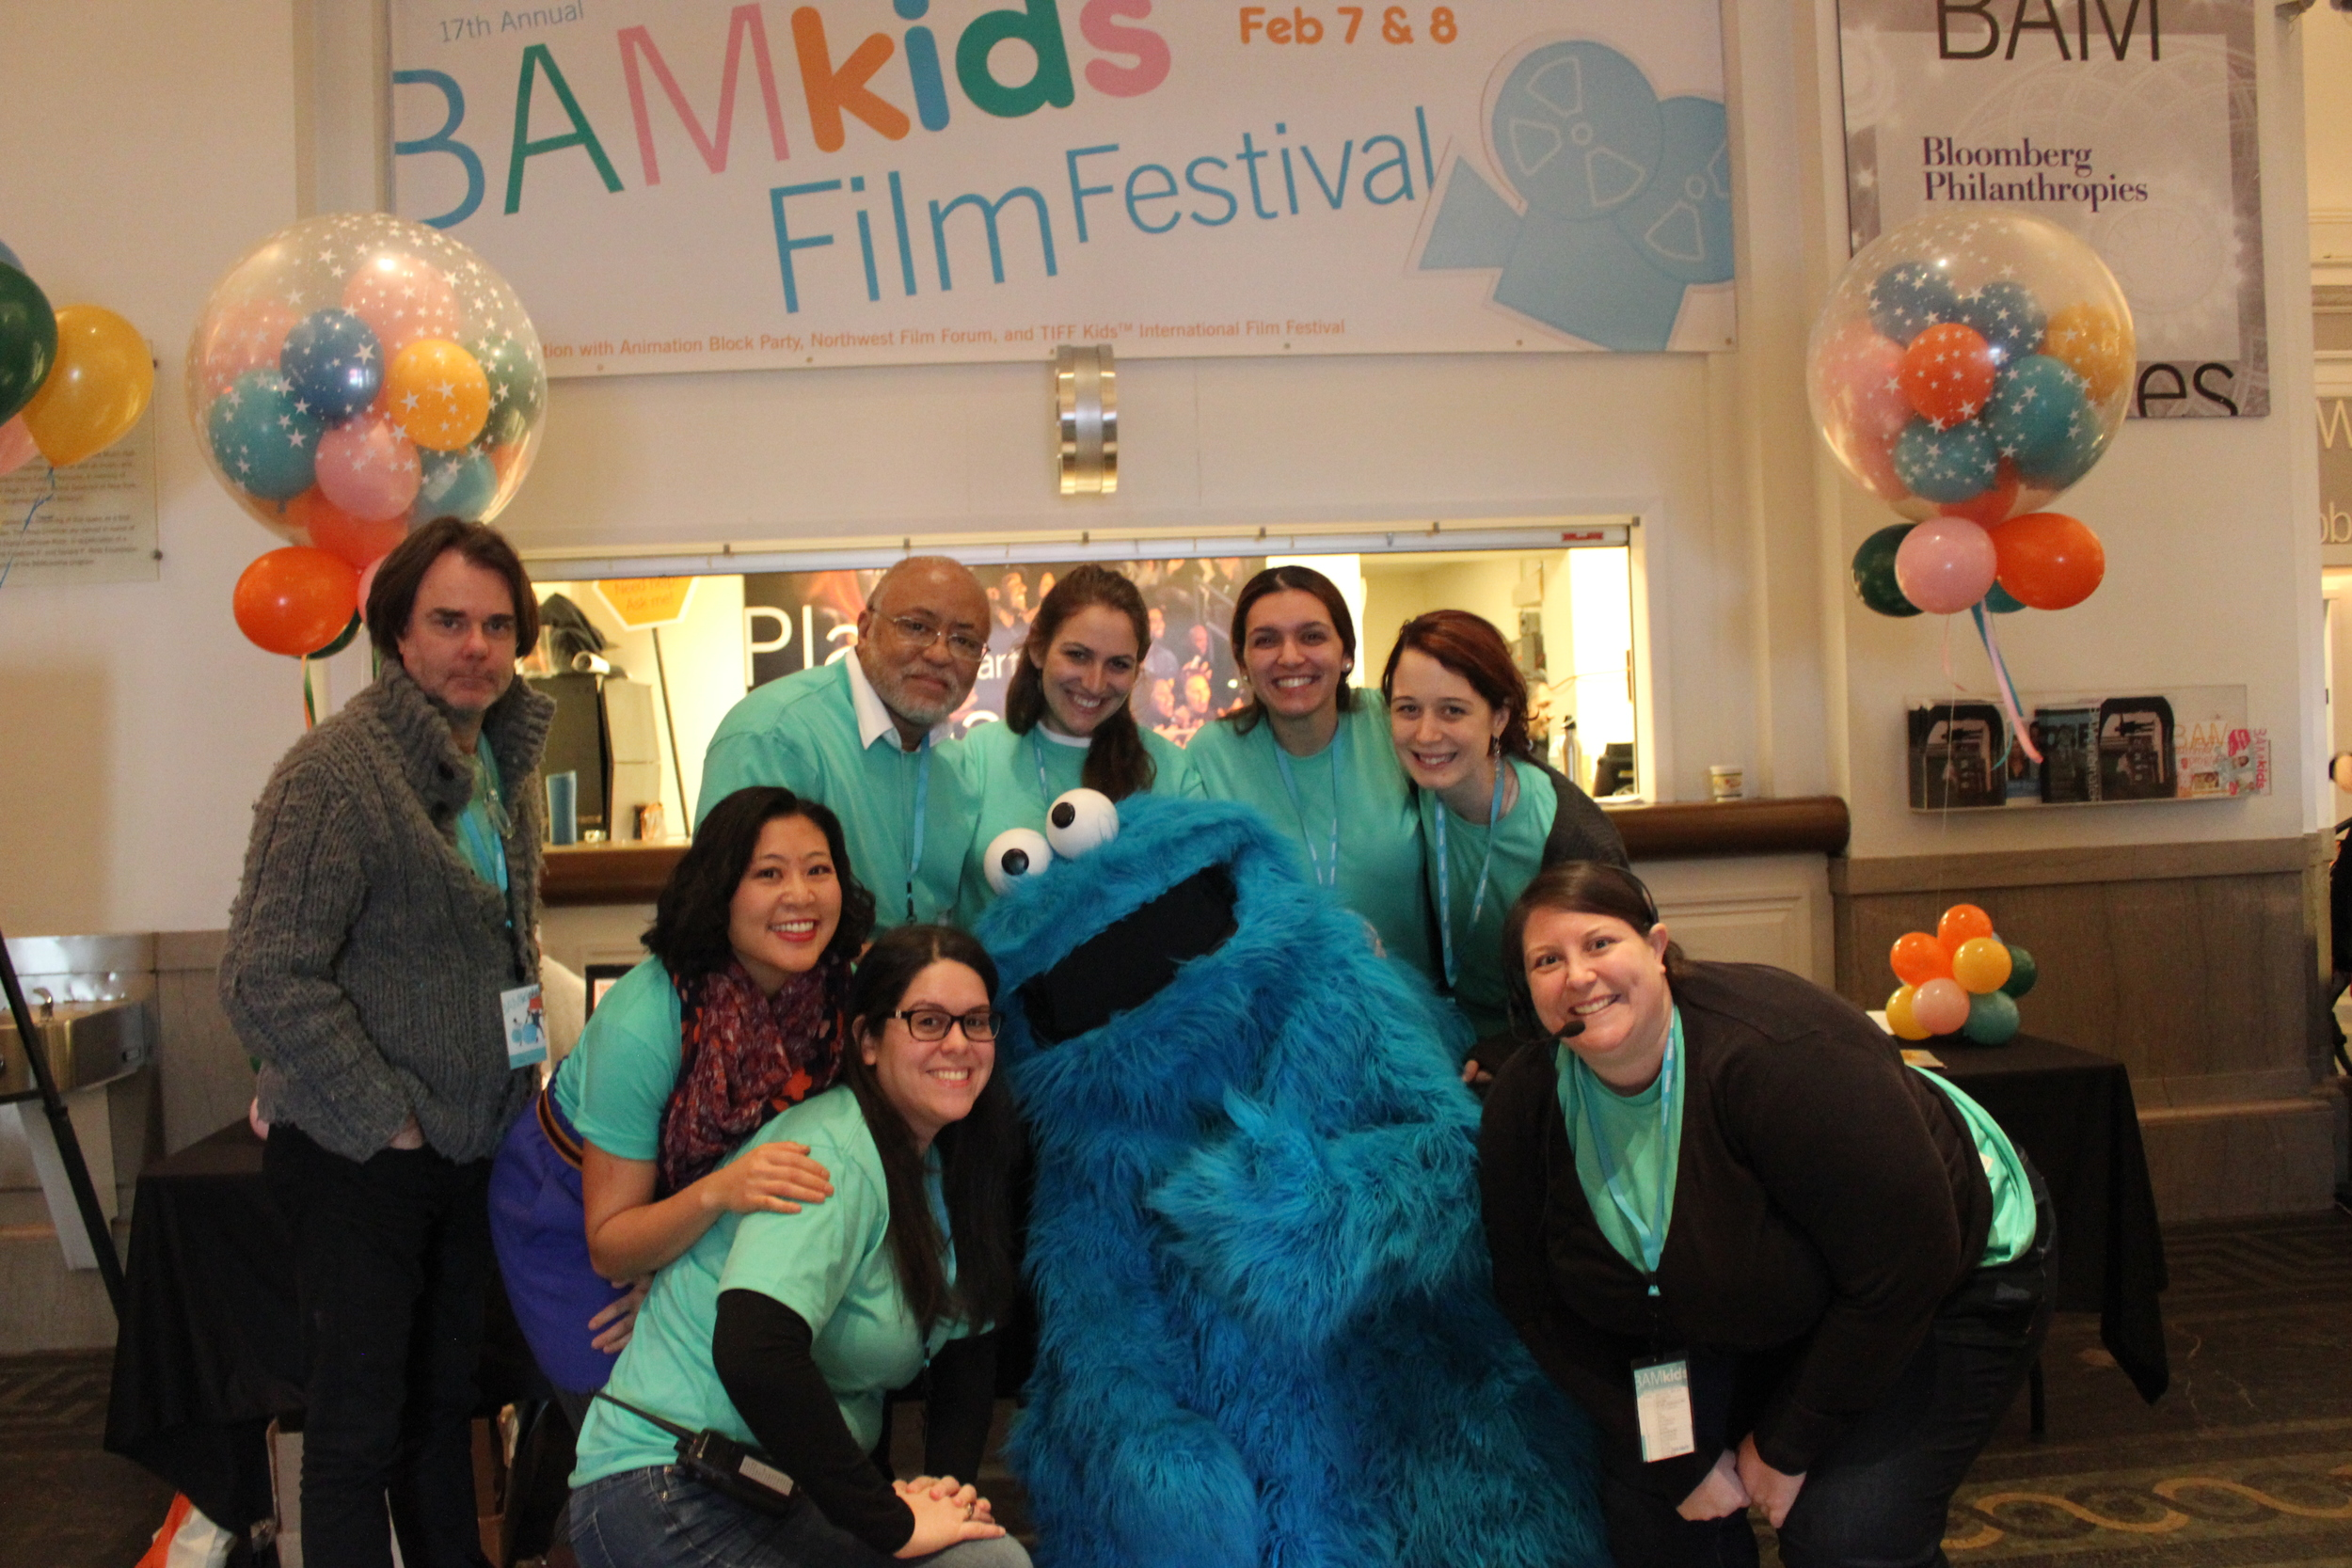 The BAM team with Cookie Monster at BAMkids Film Festival